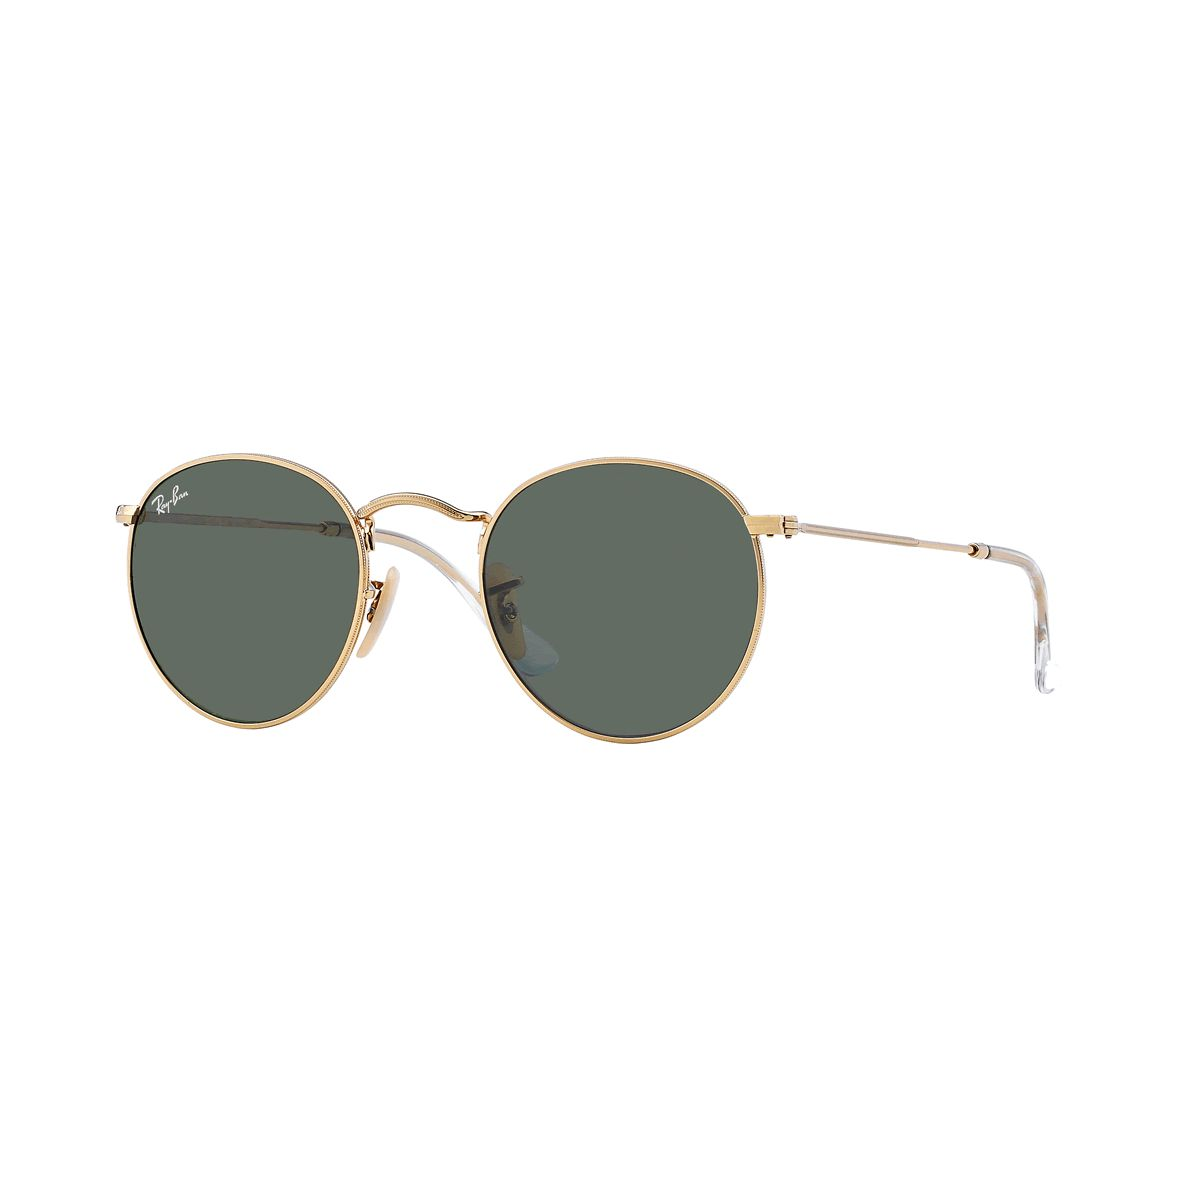 166214ee83b Ray-Ban Sunglasses - Mens   Womens Ray-Bans - Macy s